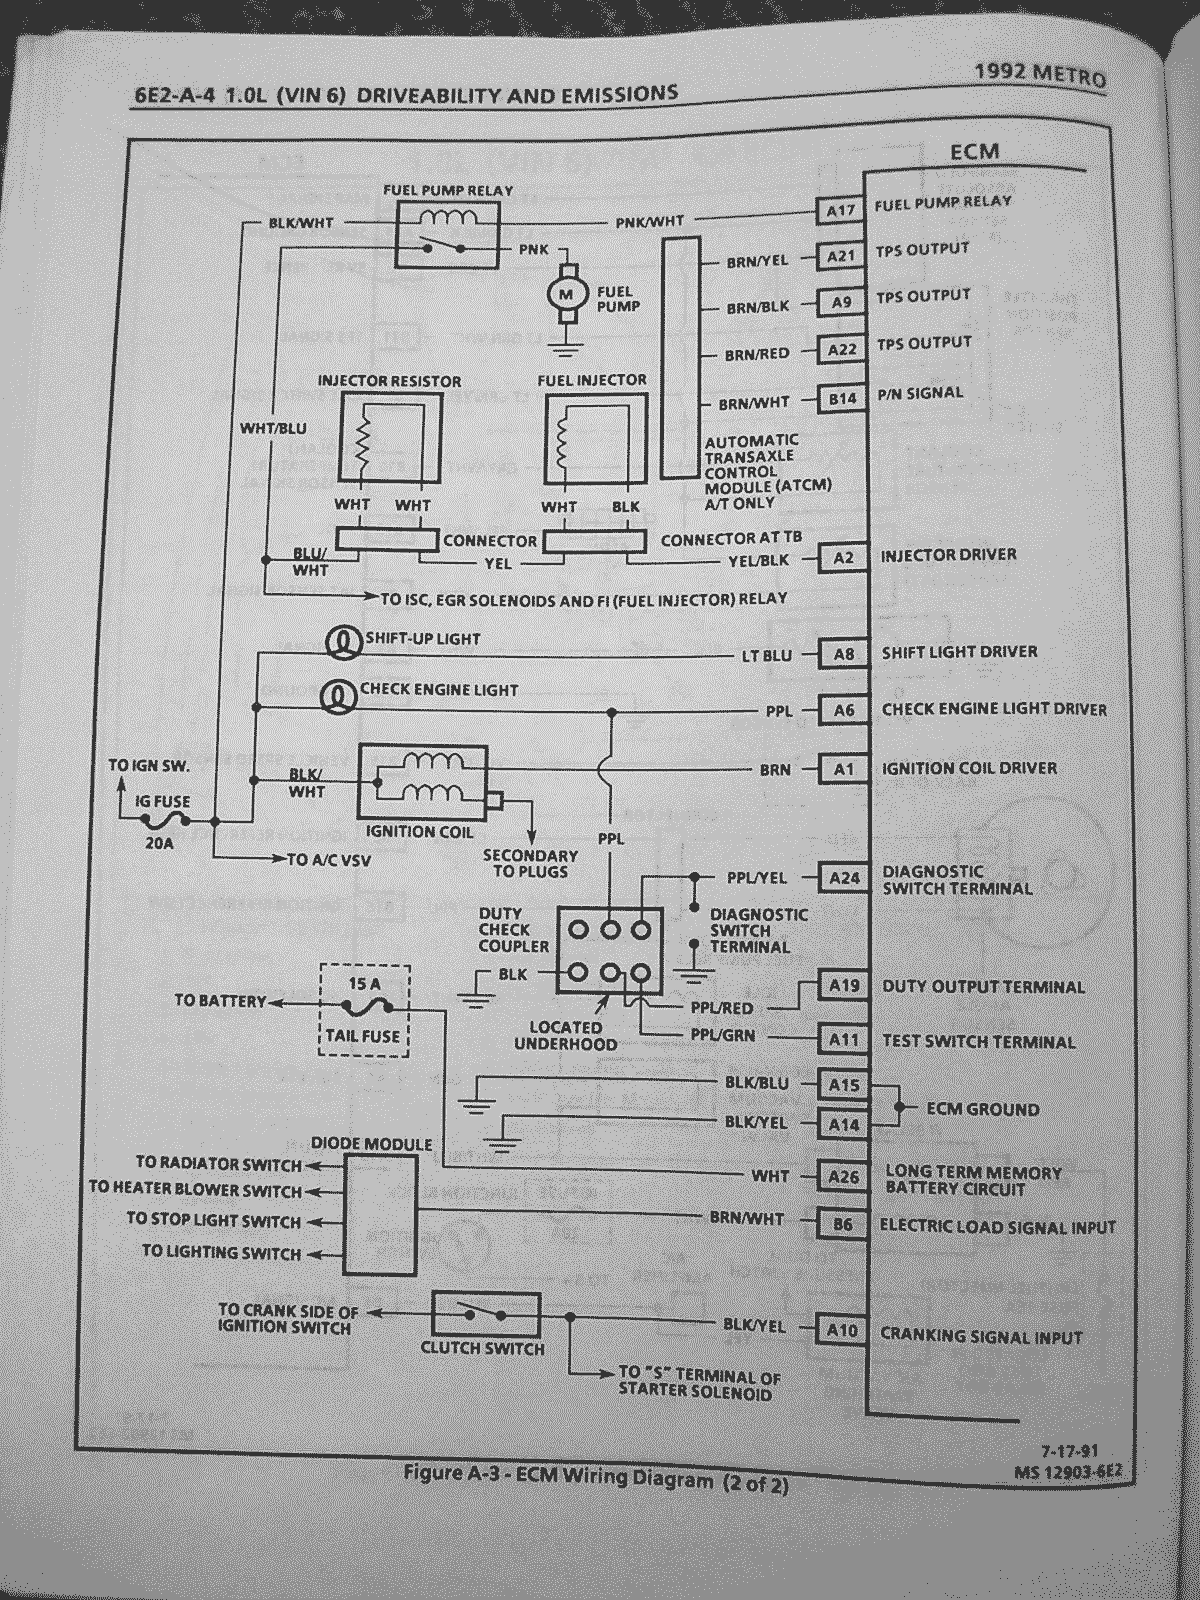 2001 Suzuki Esteem Fuse Box Diagram Archive Of Automotive Wiring 2007 Xl7 1989 Swift Just Data Rh Ag Skiphire Co Uk